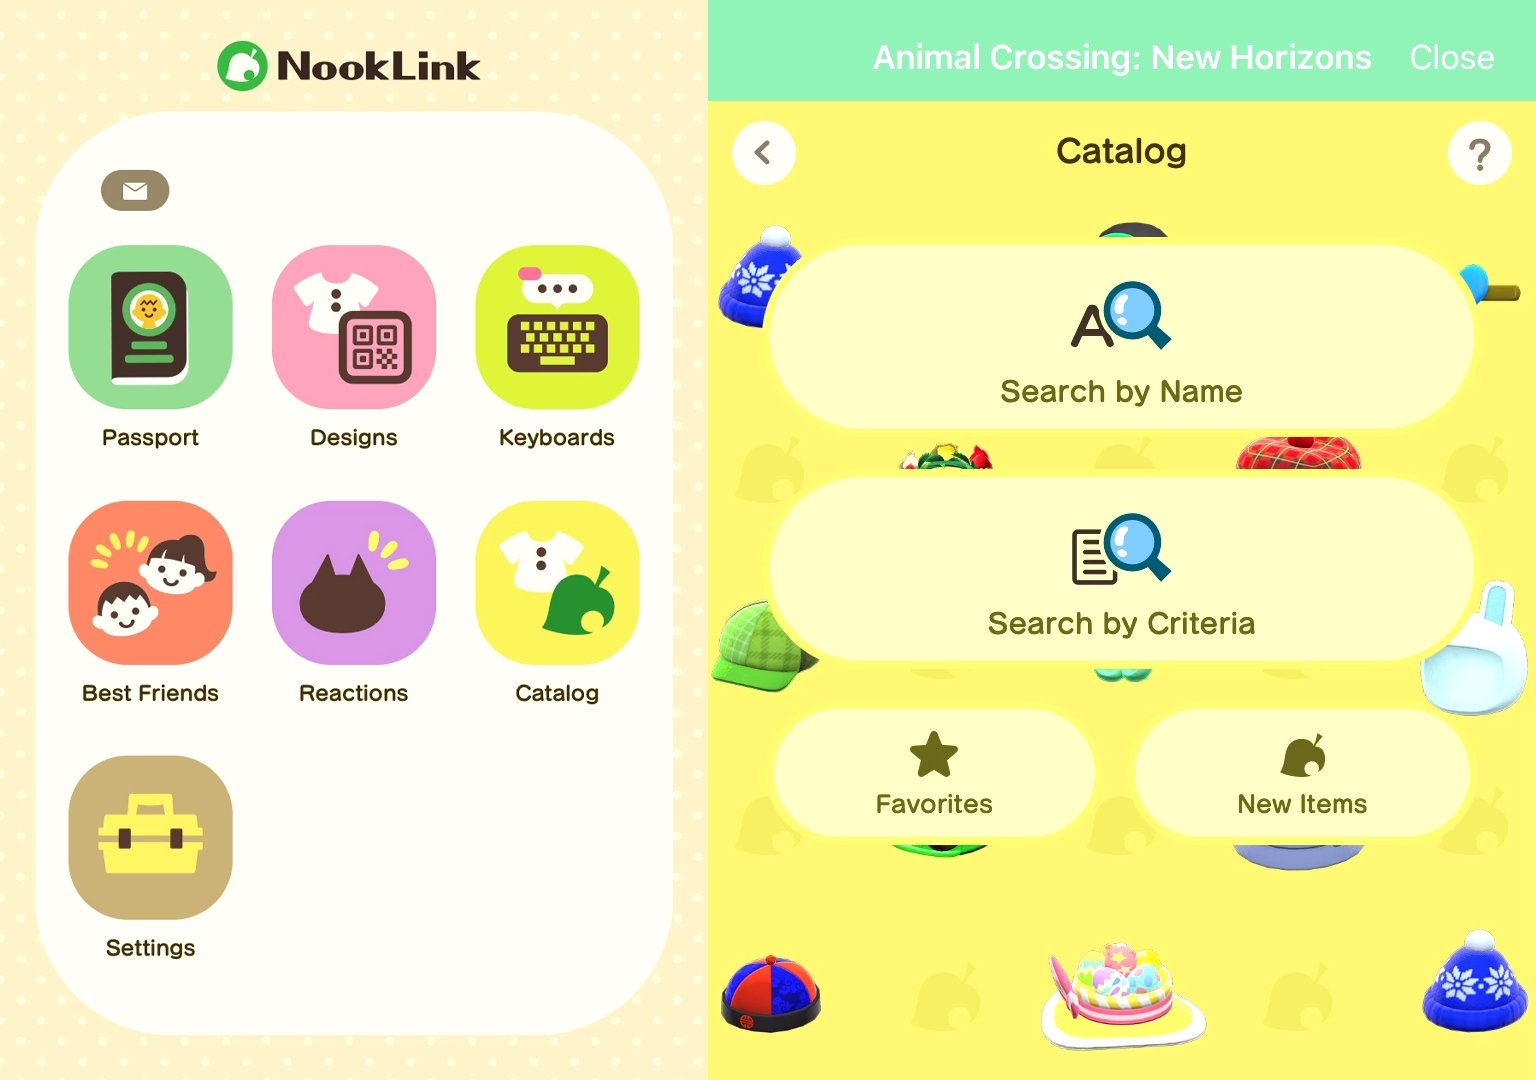 Browsing The Animal Crossing: New Horizons Catalogue Is Now Much Easier With NookLink Update